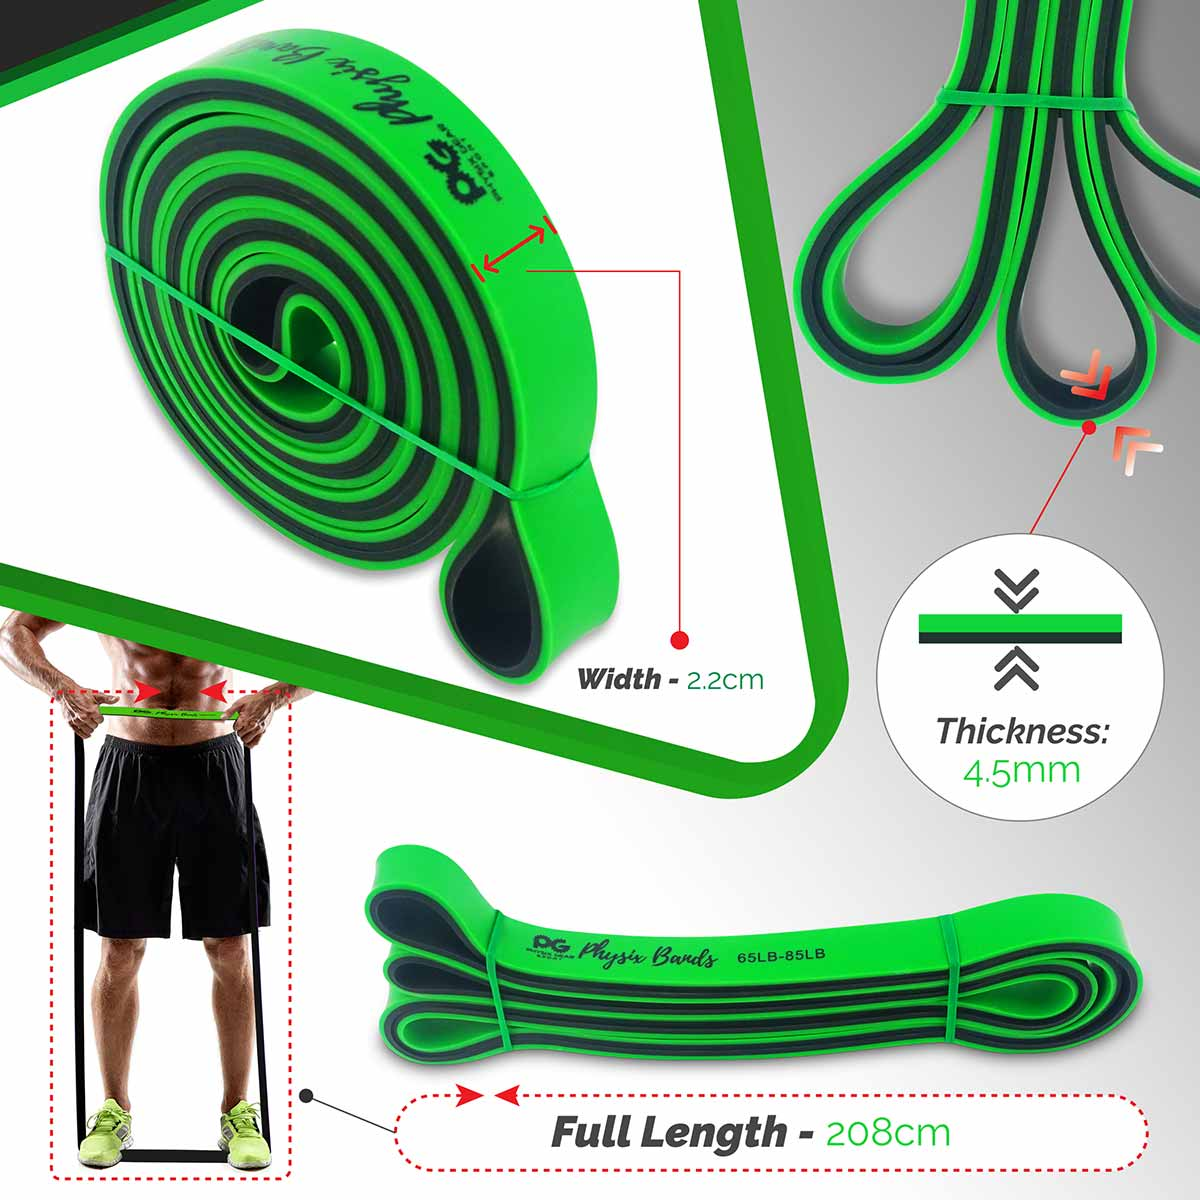 Pull Up Bands - Green (65lbs-85lbs)-Physix Gear Sport